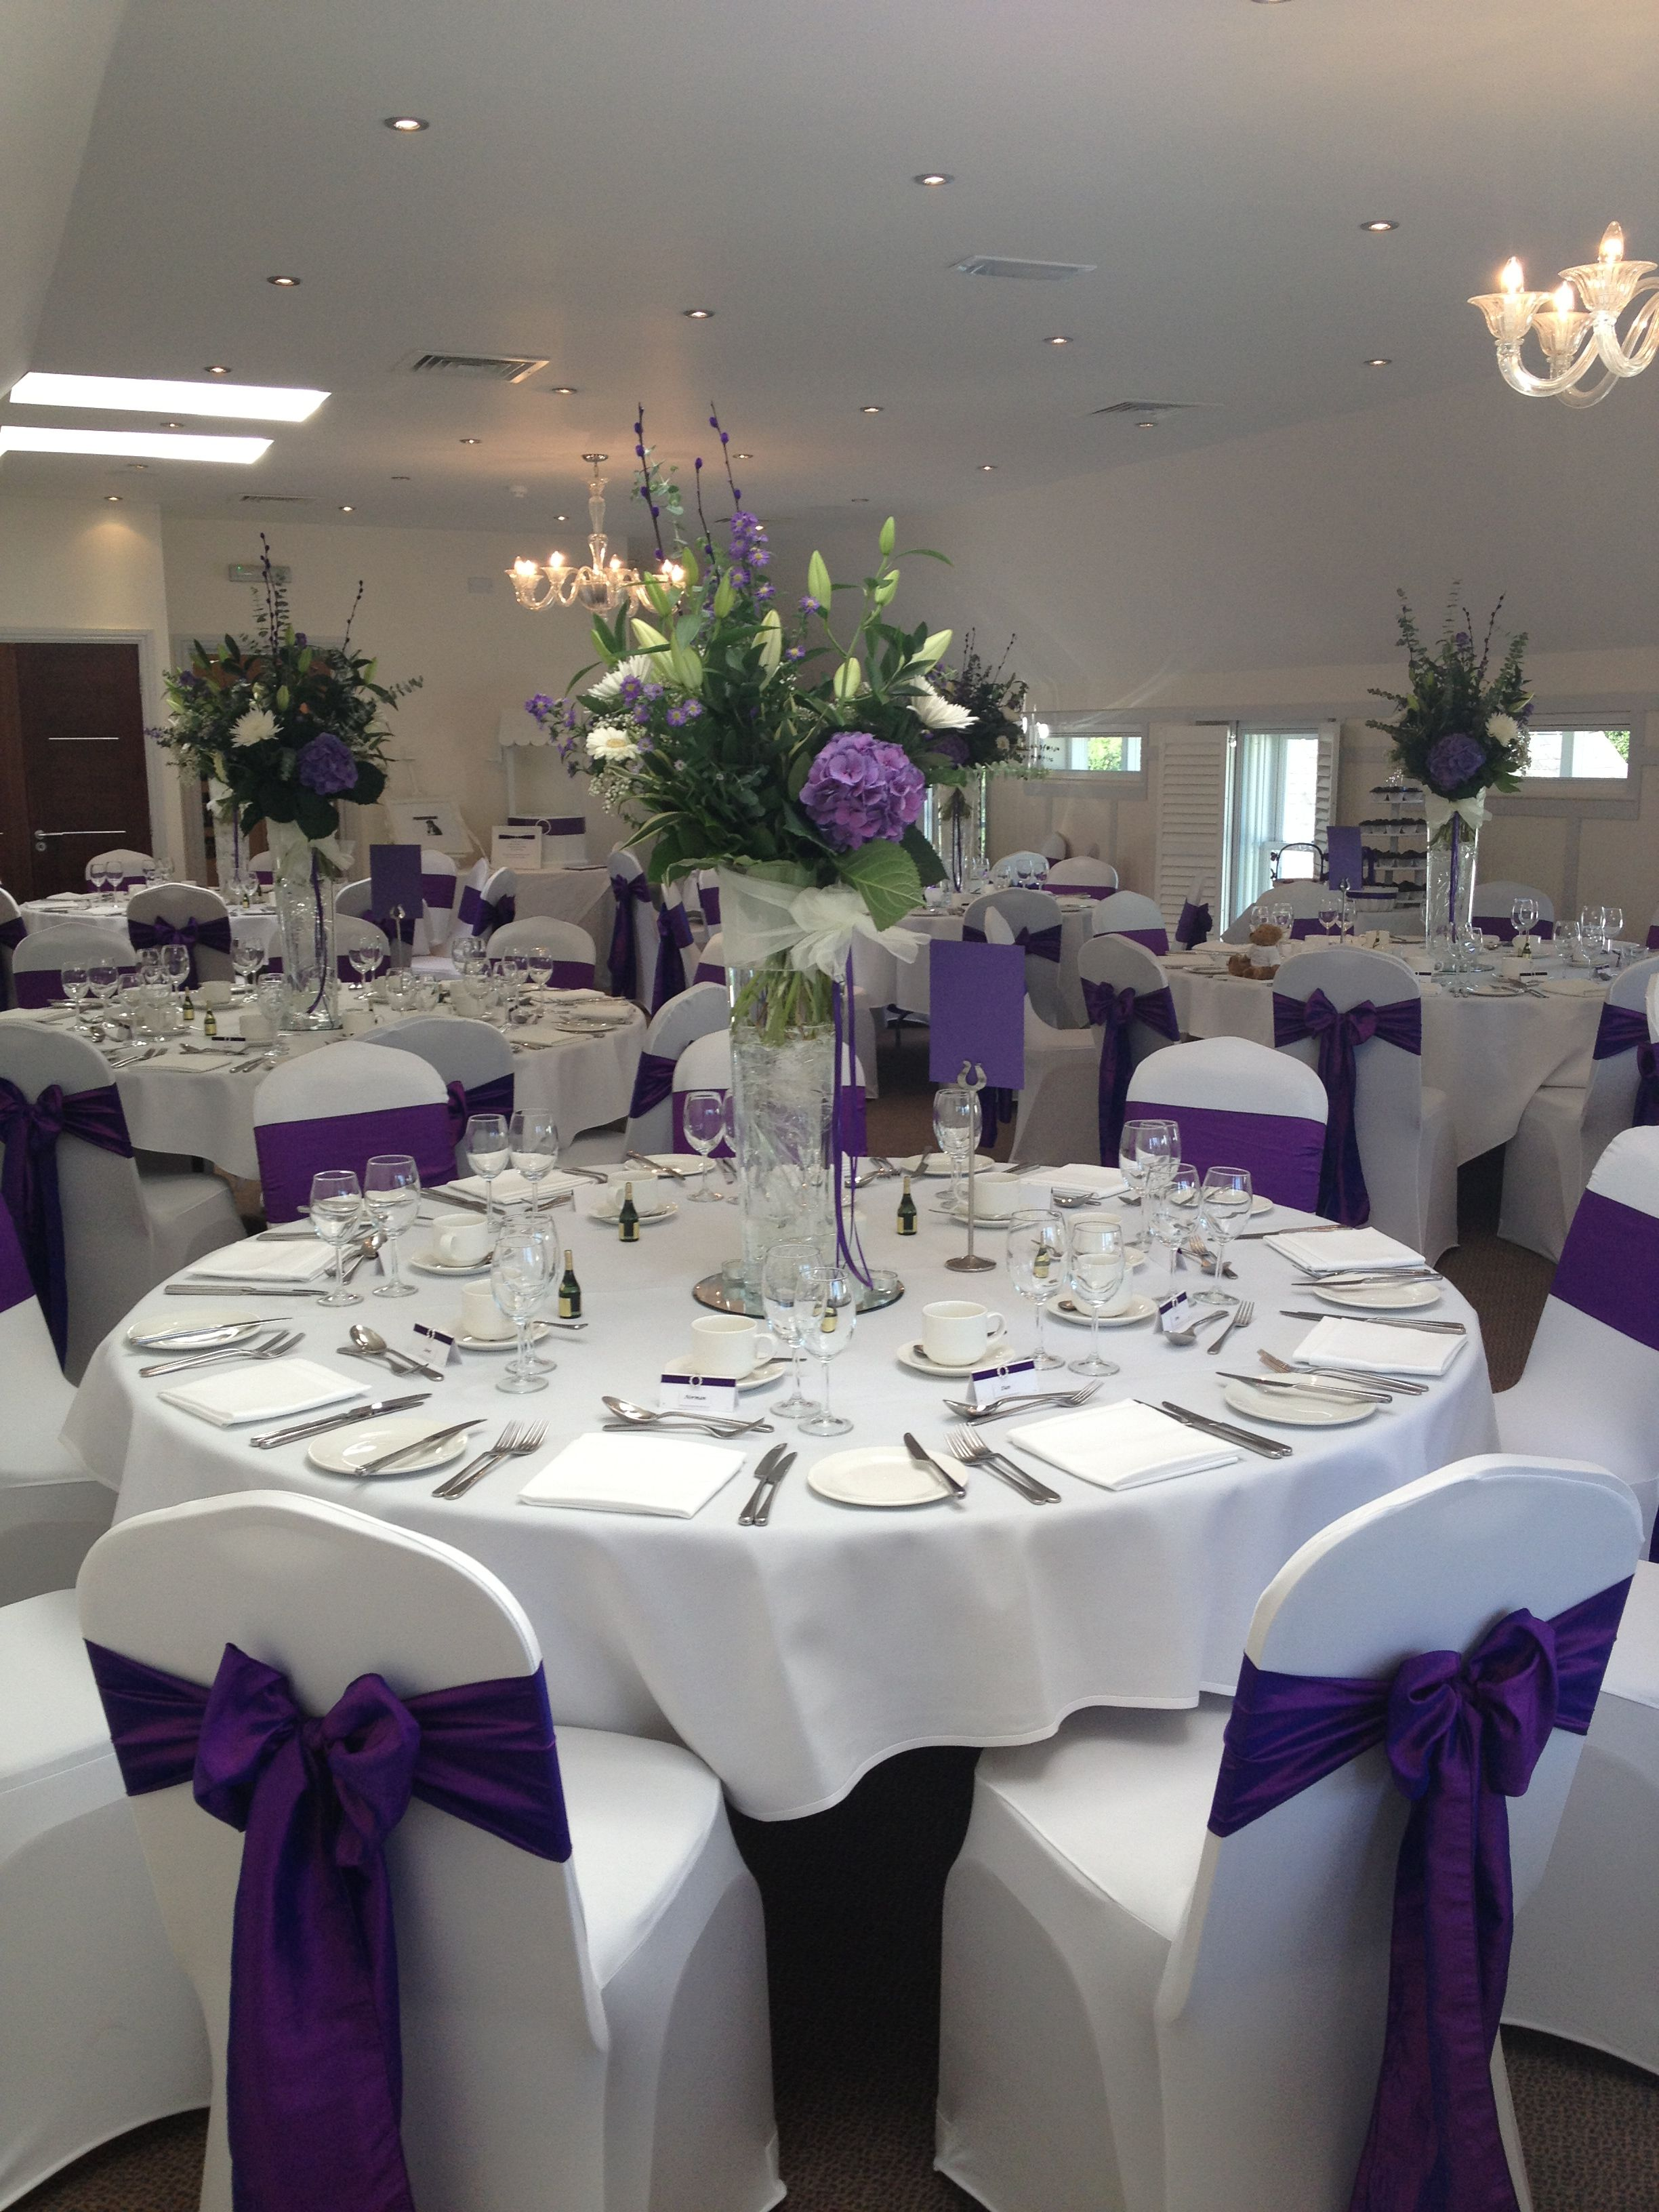 Lilac wedding decoration ideas  This oneus more ideal and what it will look like but I like this